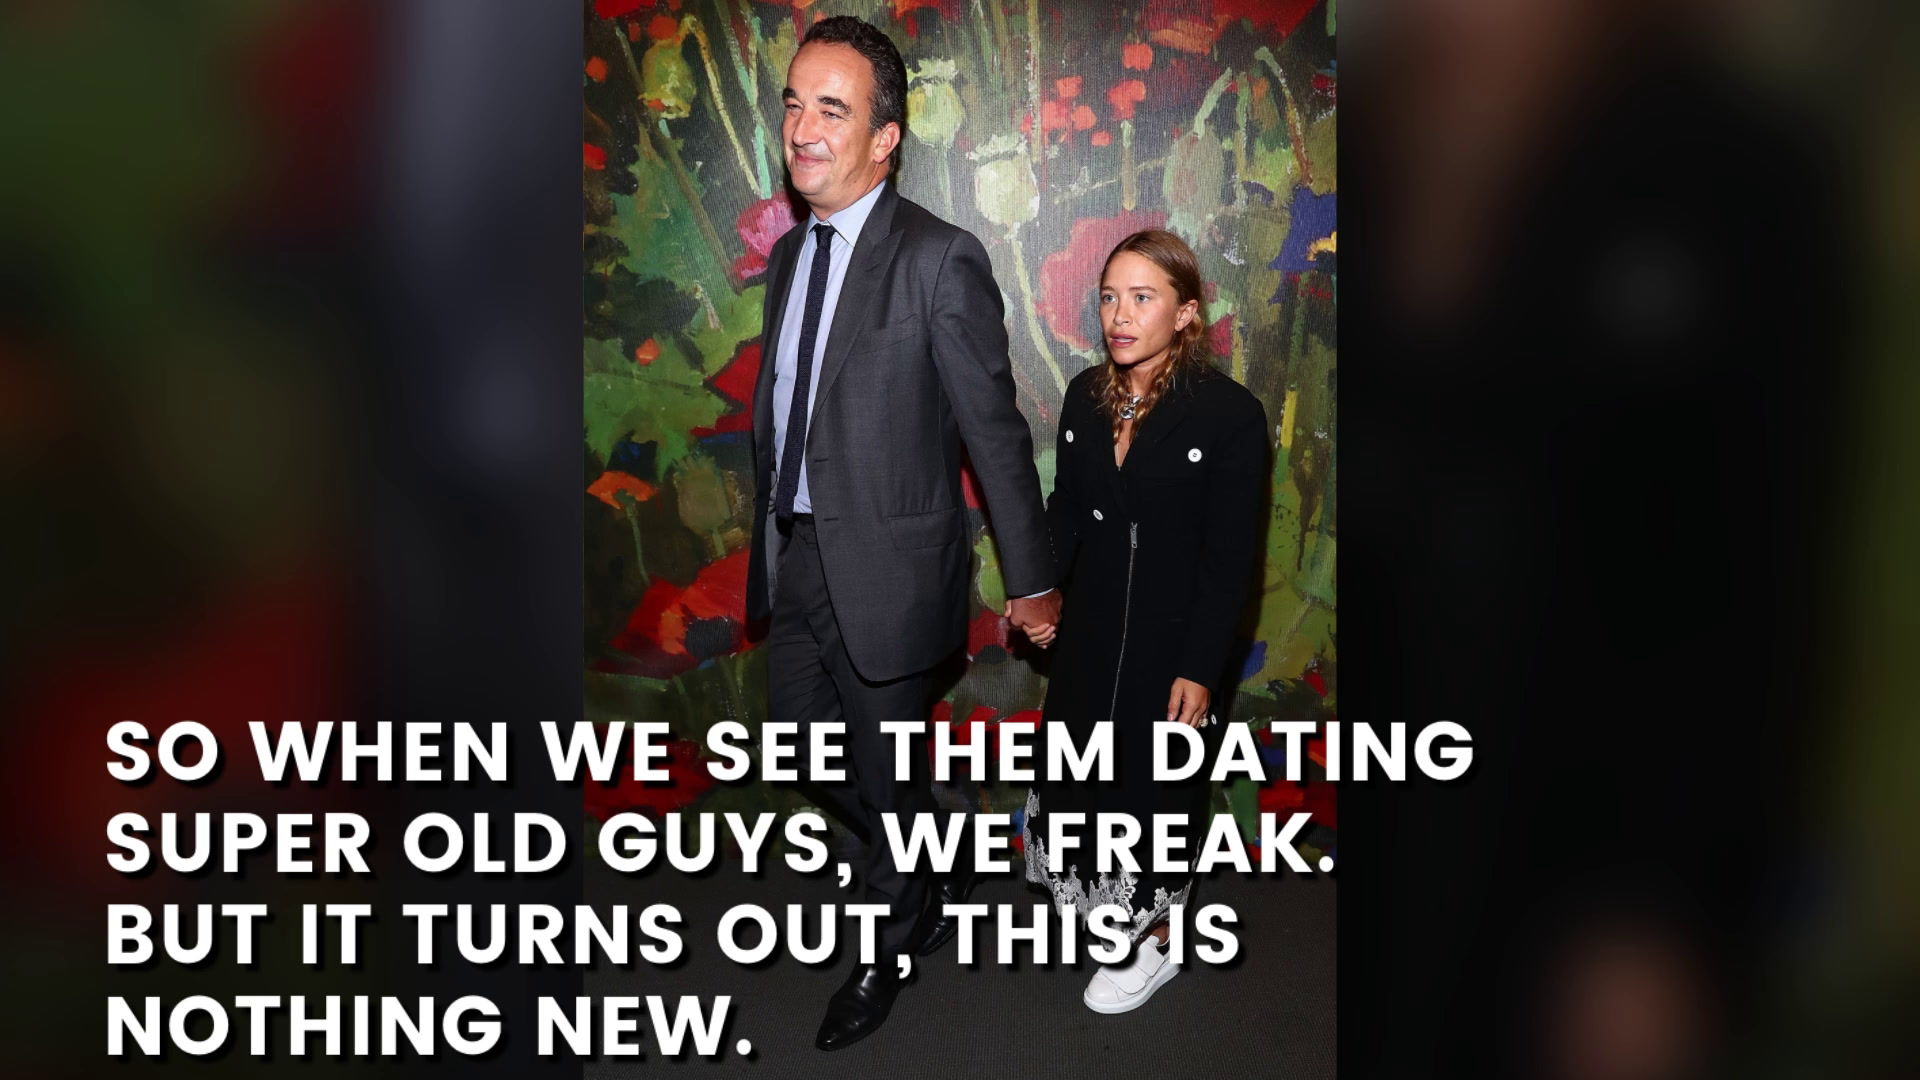 dating old guys